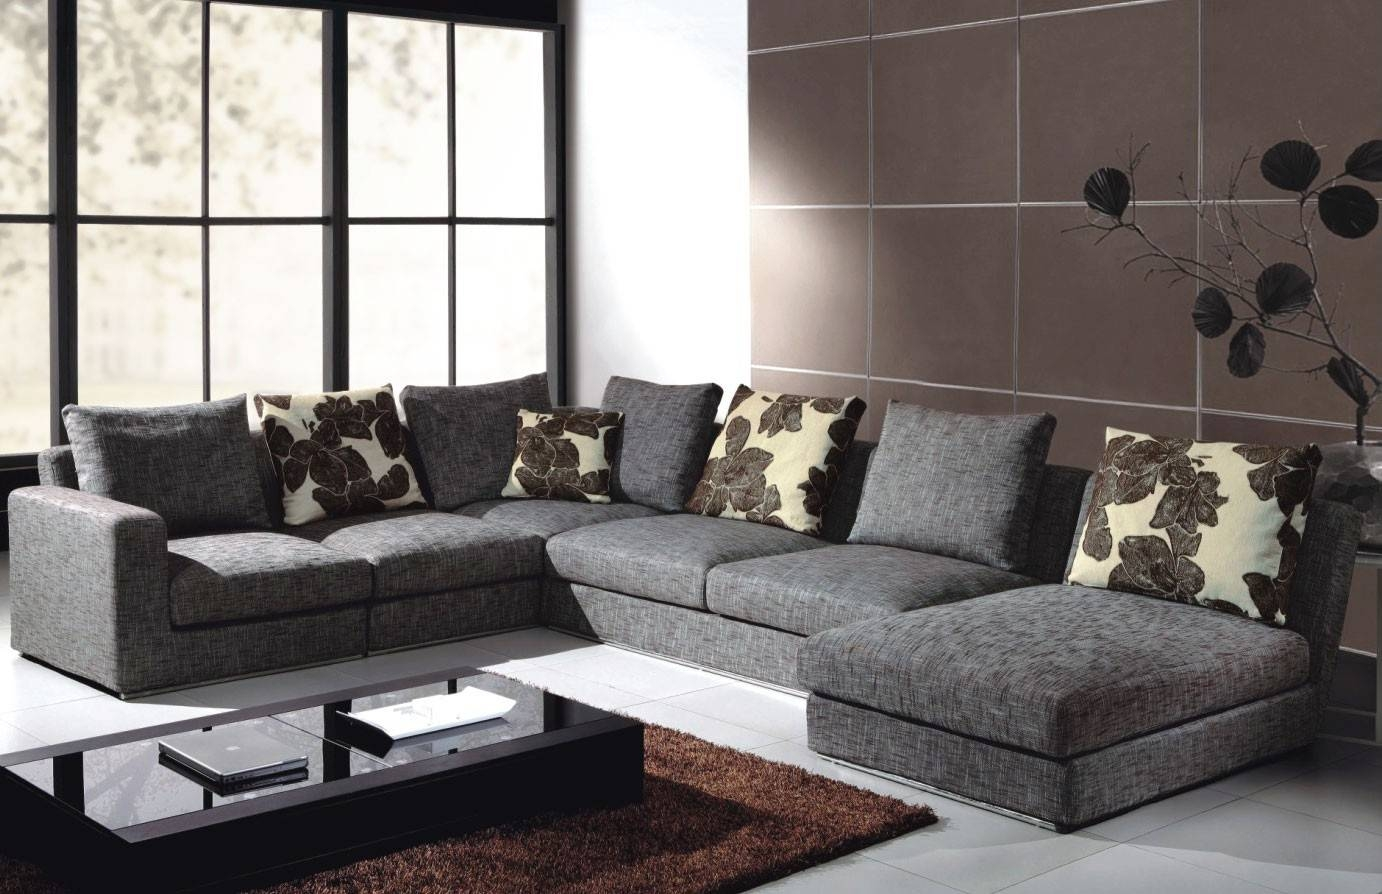 White Sectional Sofa : Choosing One Of The Suitable Sectional intended for Sectinal Sofas (Image 30 of 30)